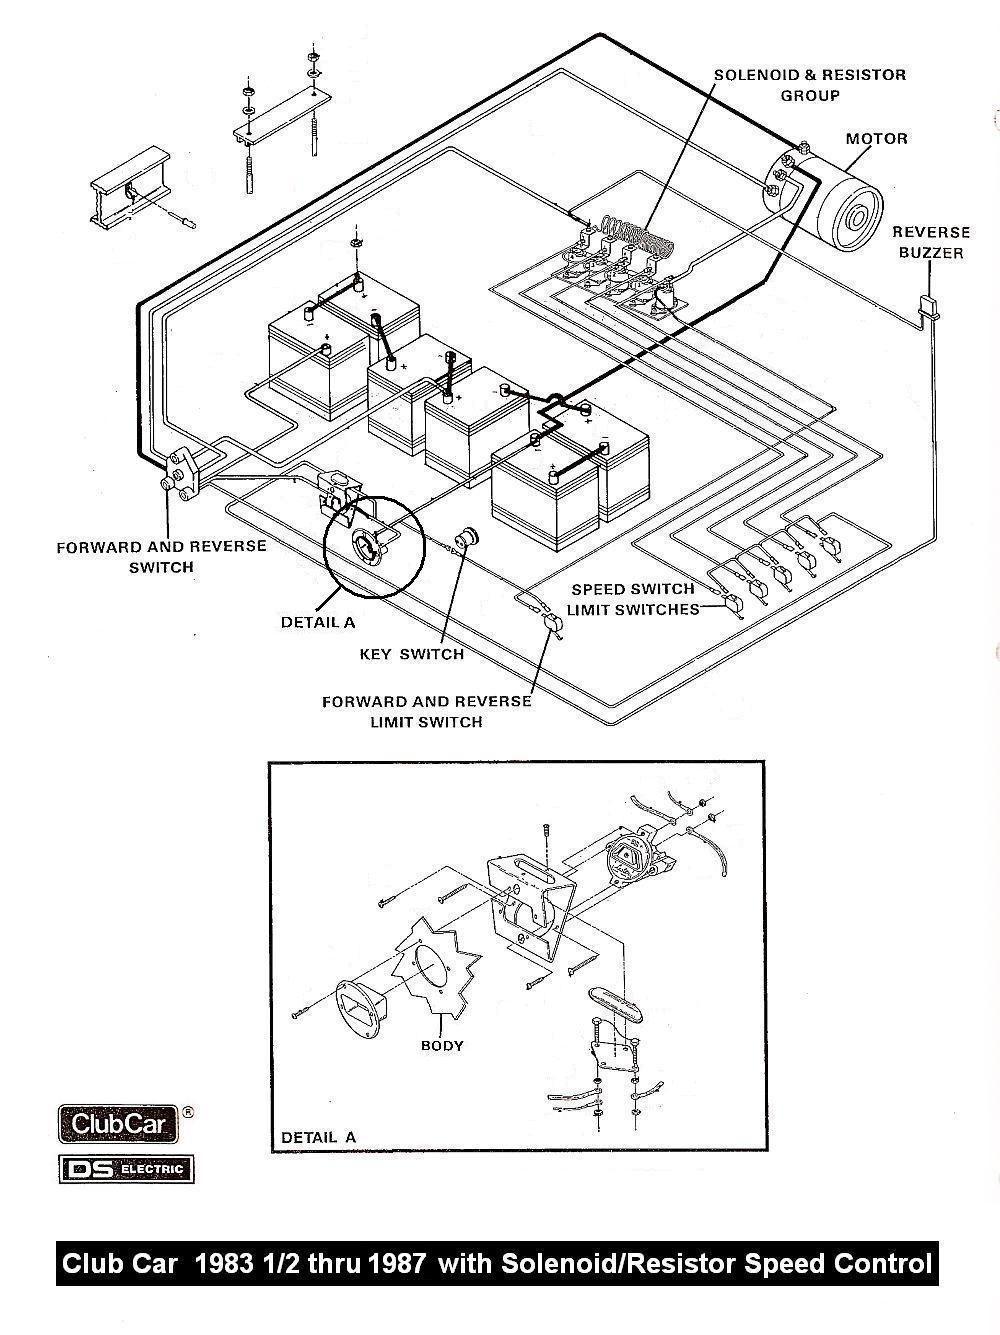 electric club car wiring diagrams club car wiring diagram 36 volt club car  1983 1 per thru 1987 with solenoid or resistor speed control